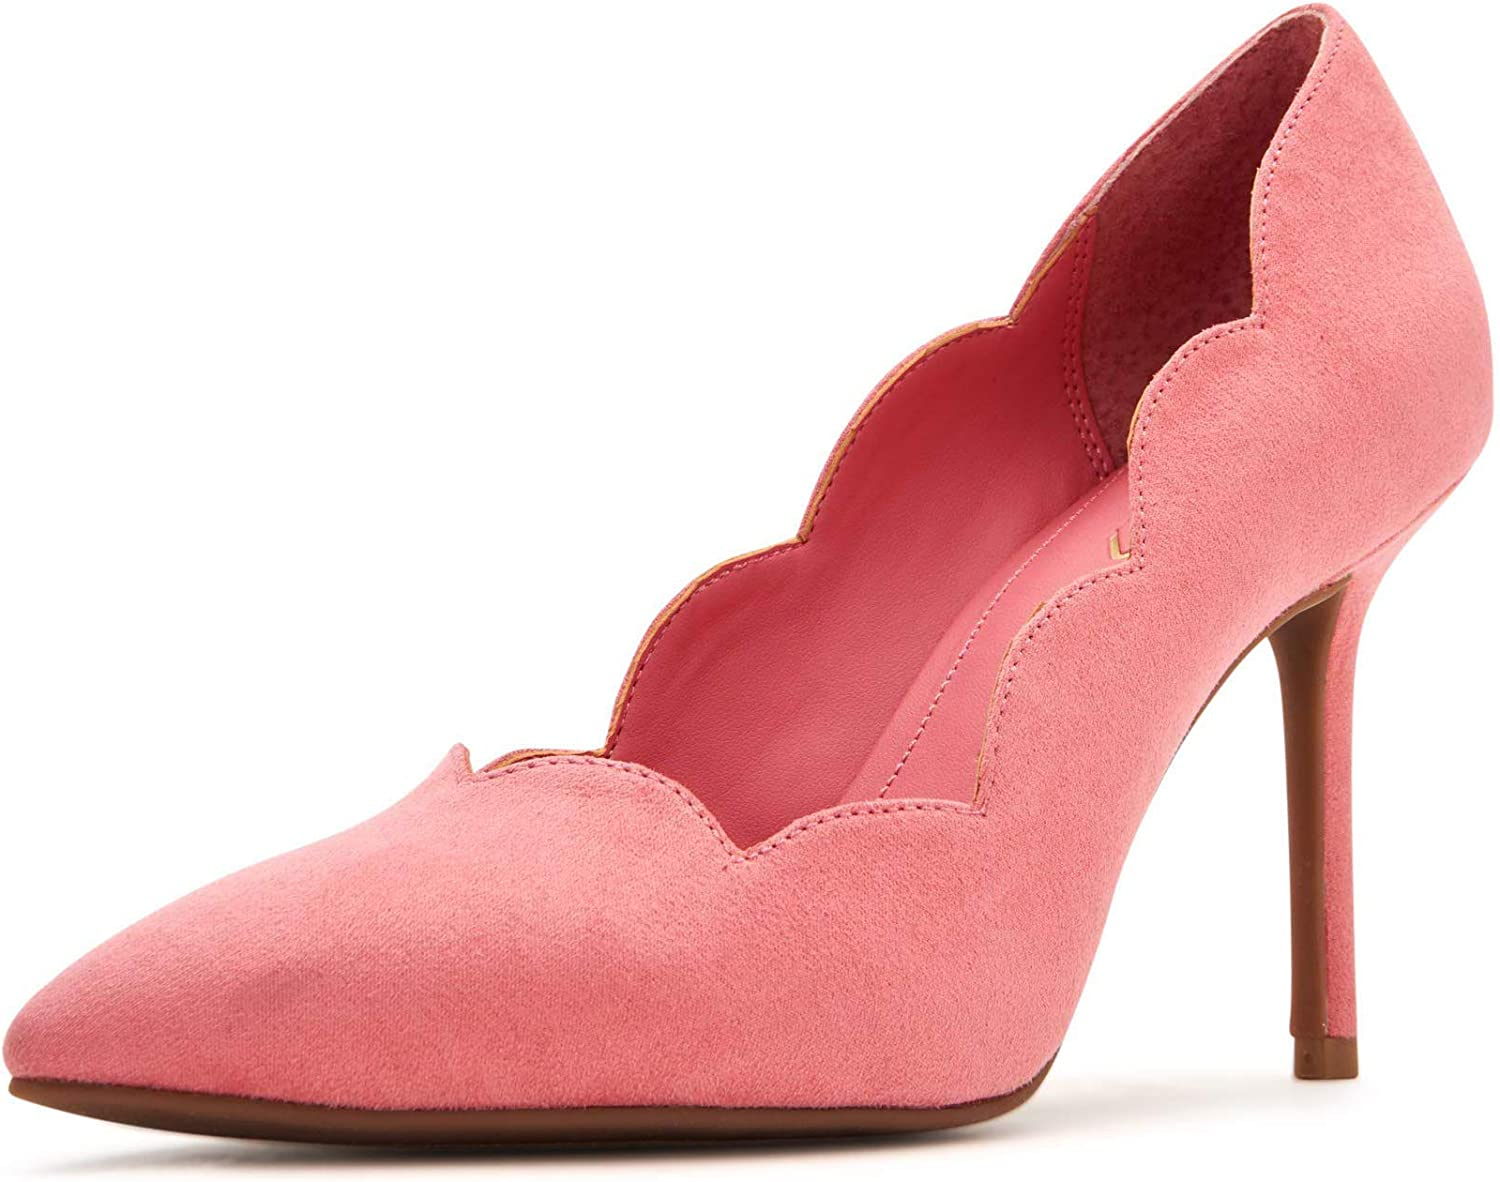 Katy Cheap mail order sales Max 86% OFF Perry Women's The Pump Dina